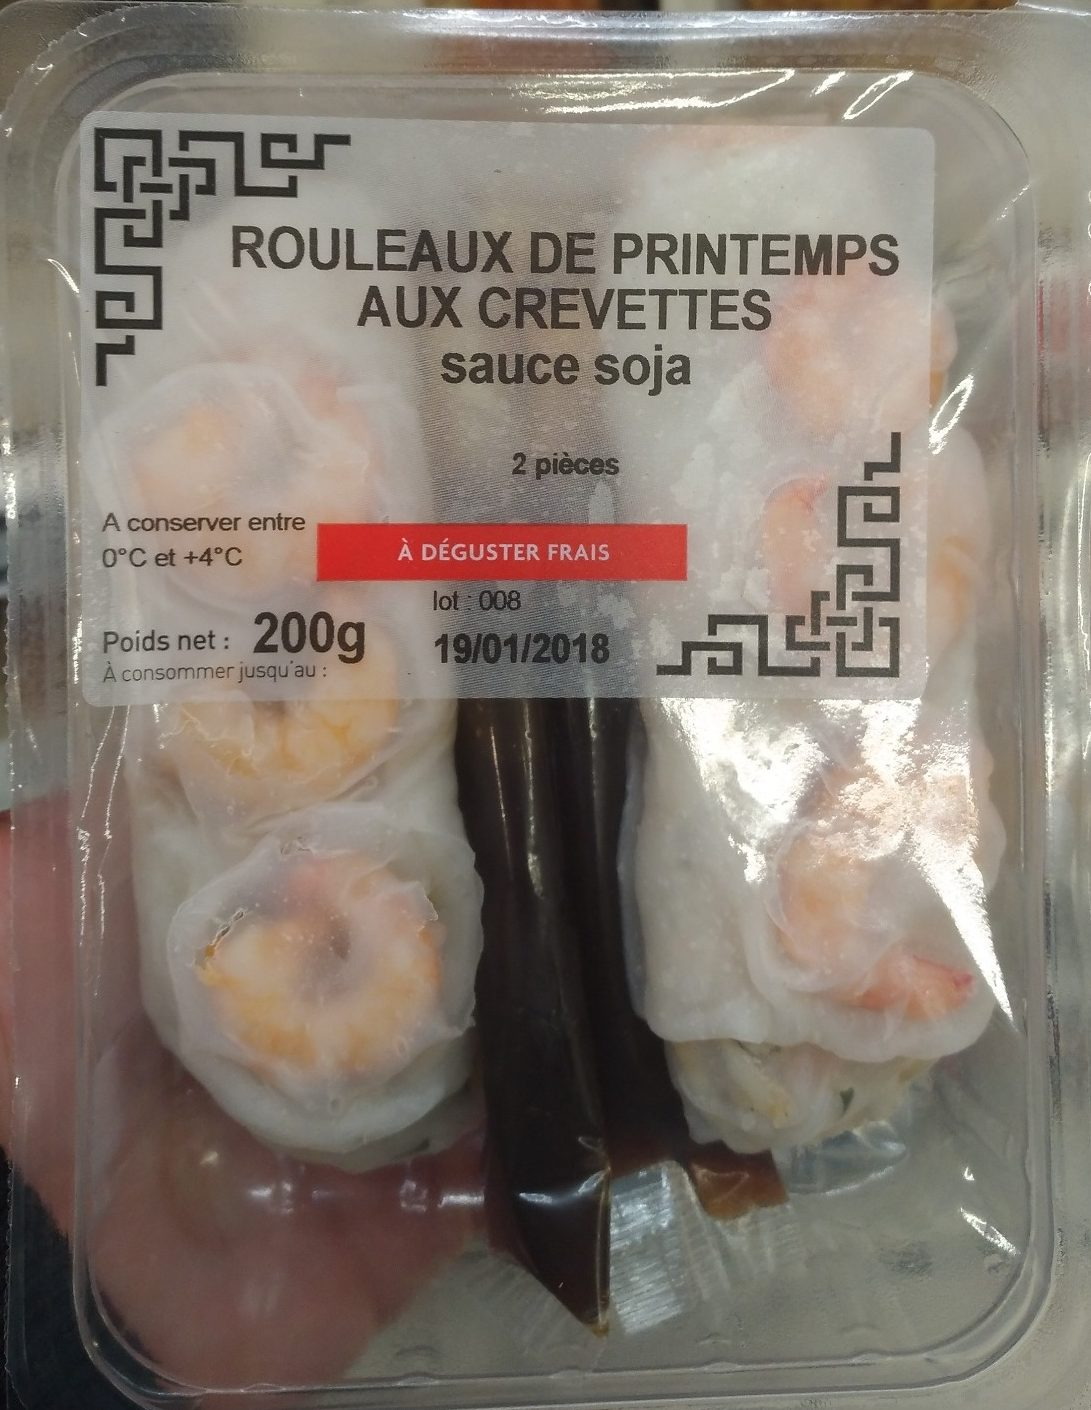 Rouleau de printemps - Product